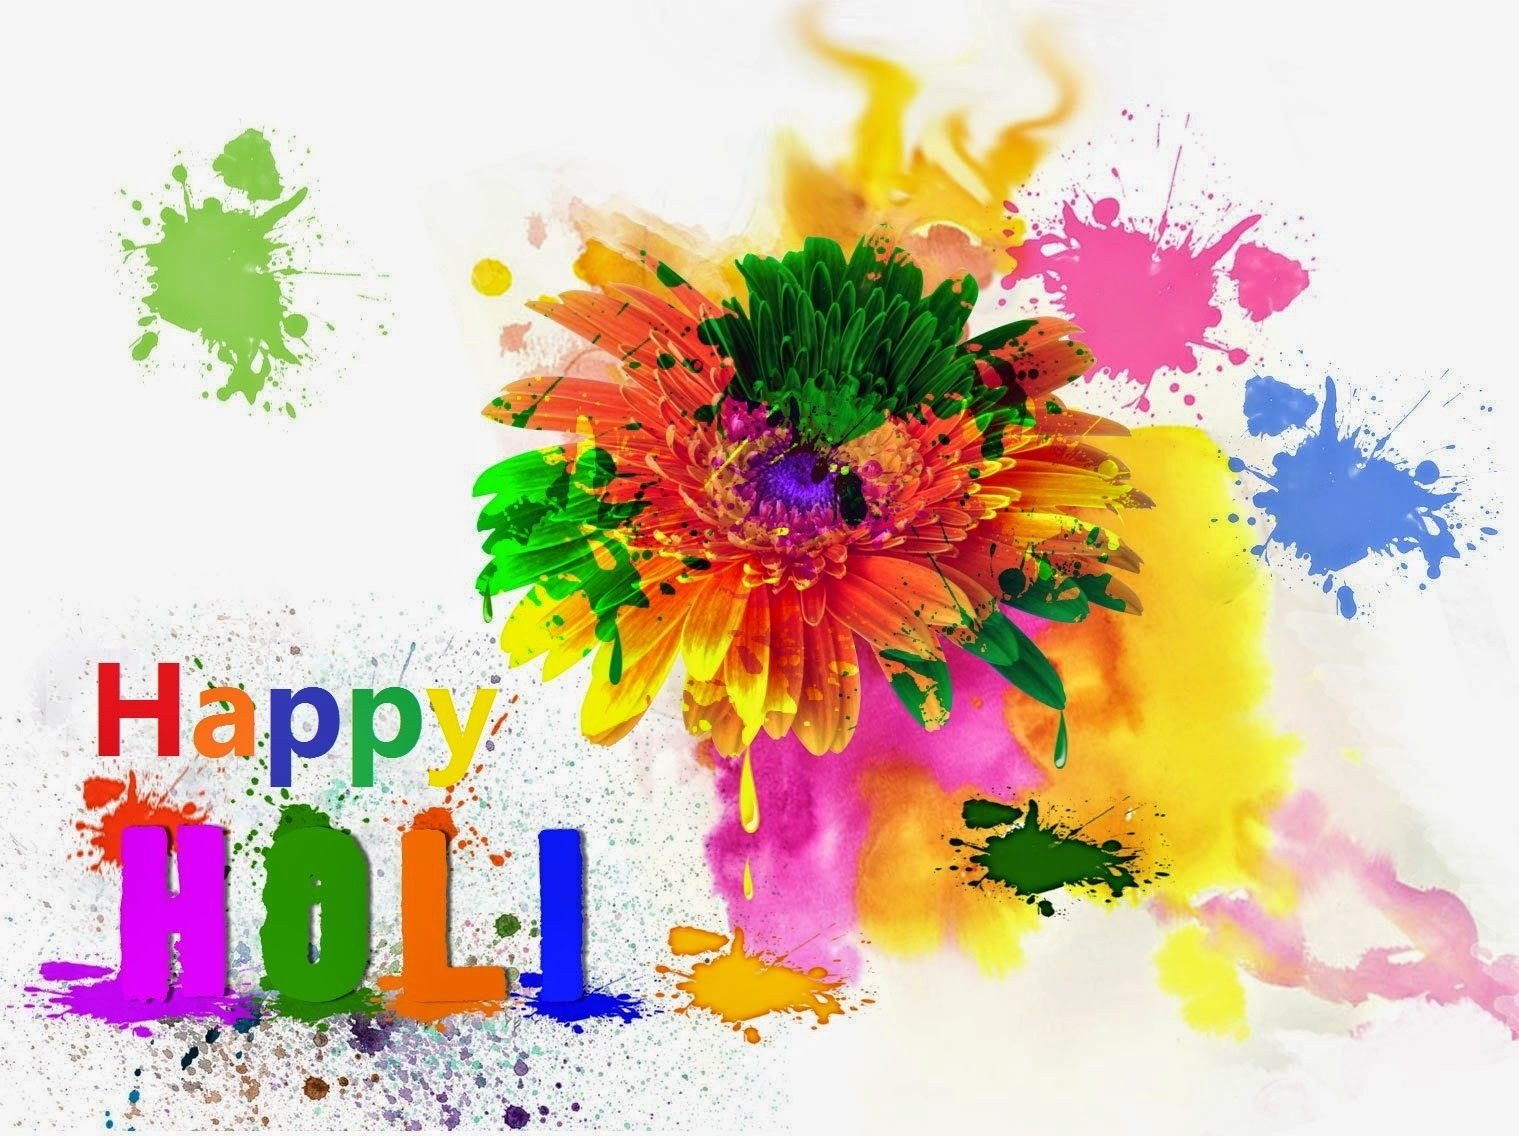 Happy Holi Free Wallpaper Happy Holi Full Hd Wallpaper Download Free Holi Wallpaper